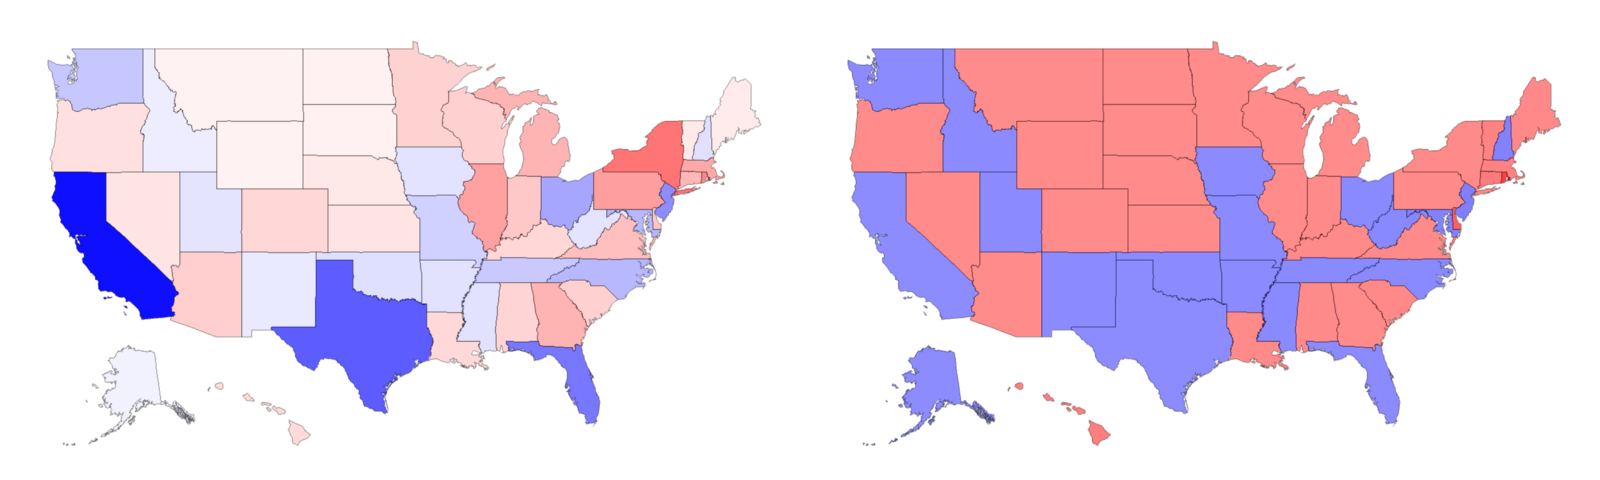 Two maps of the United States. The left one has California, Texas, Florida, and other large states colored darkly.